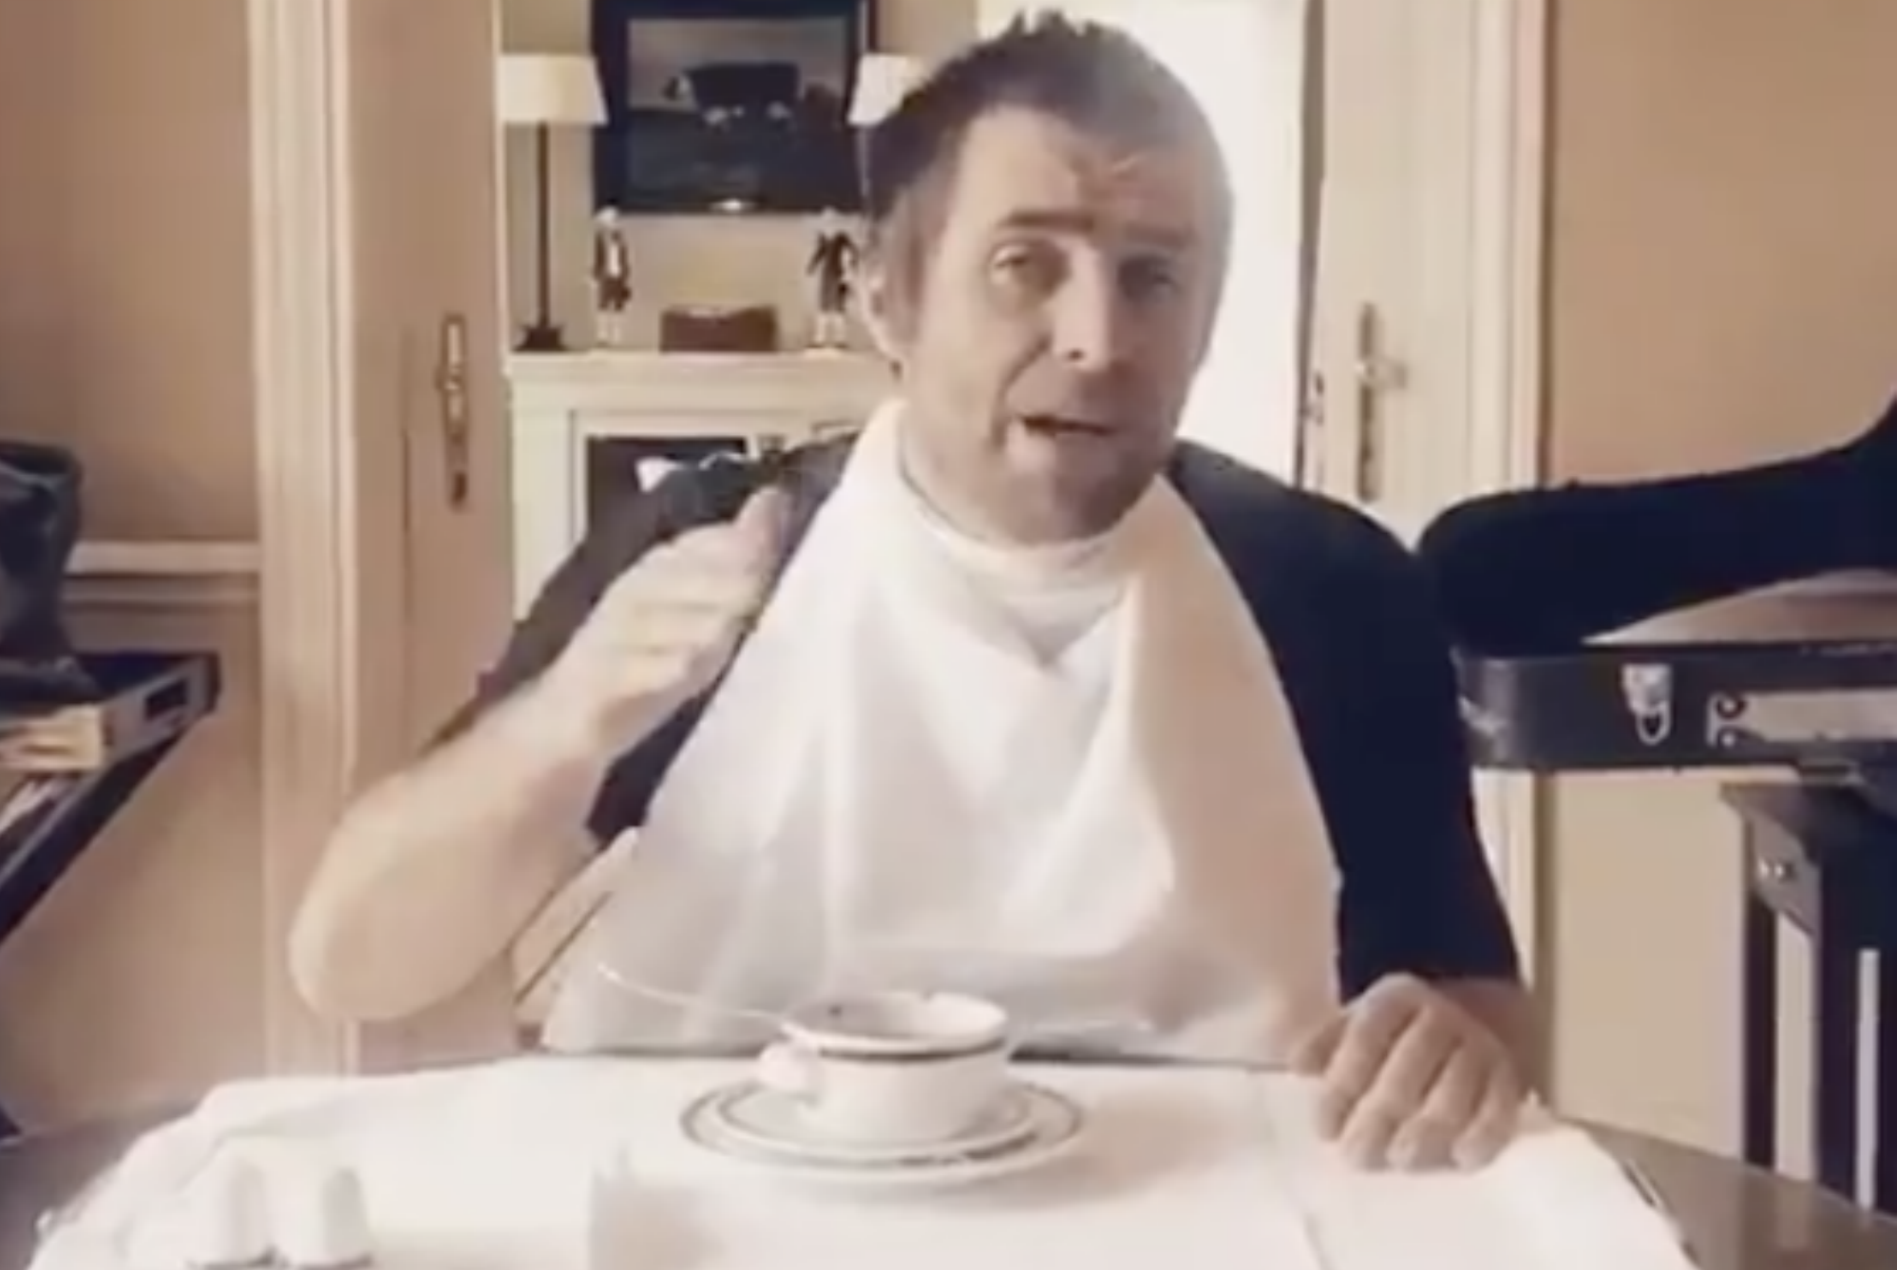 Watch Liam Gallagher Eat Soup With A Fork In His Most